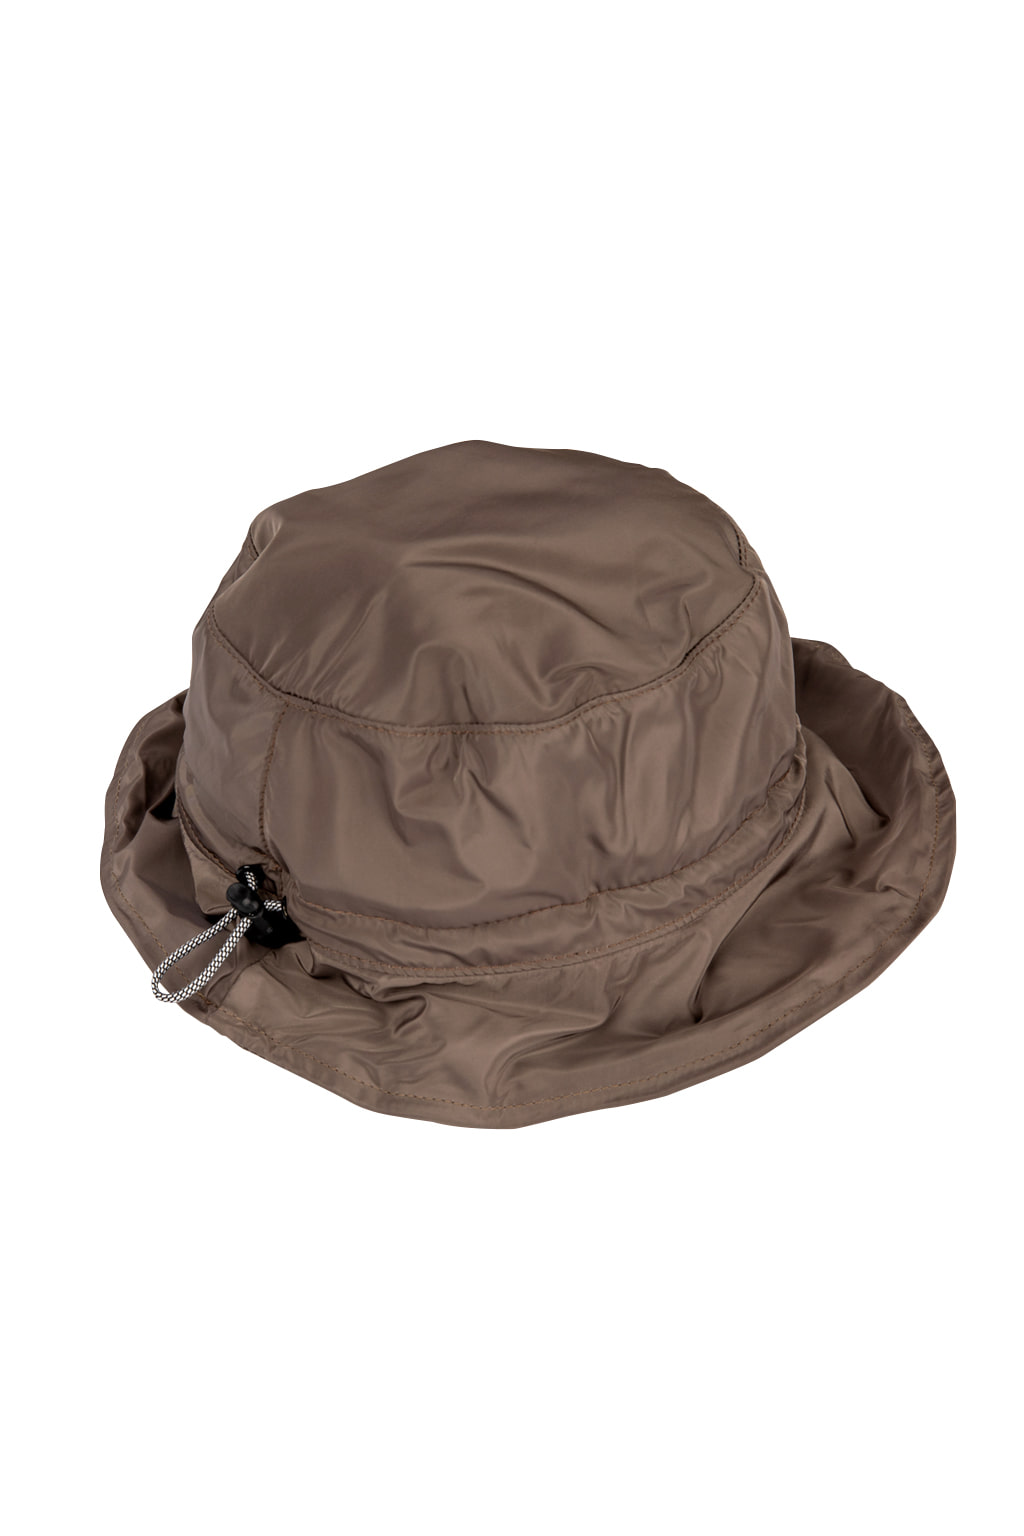 wave string bucket hat - khaki